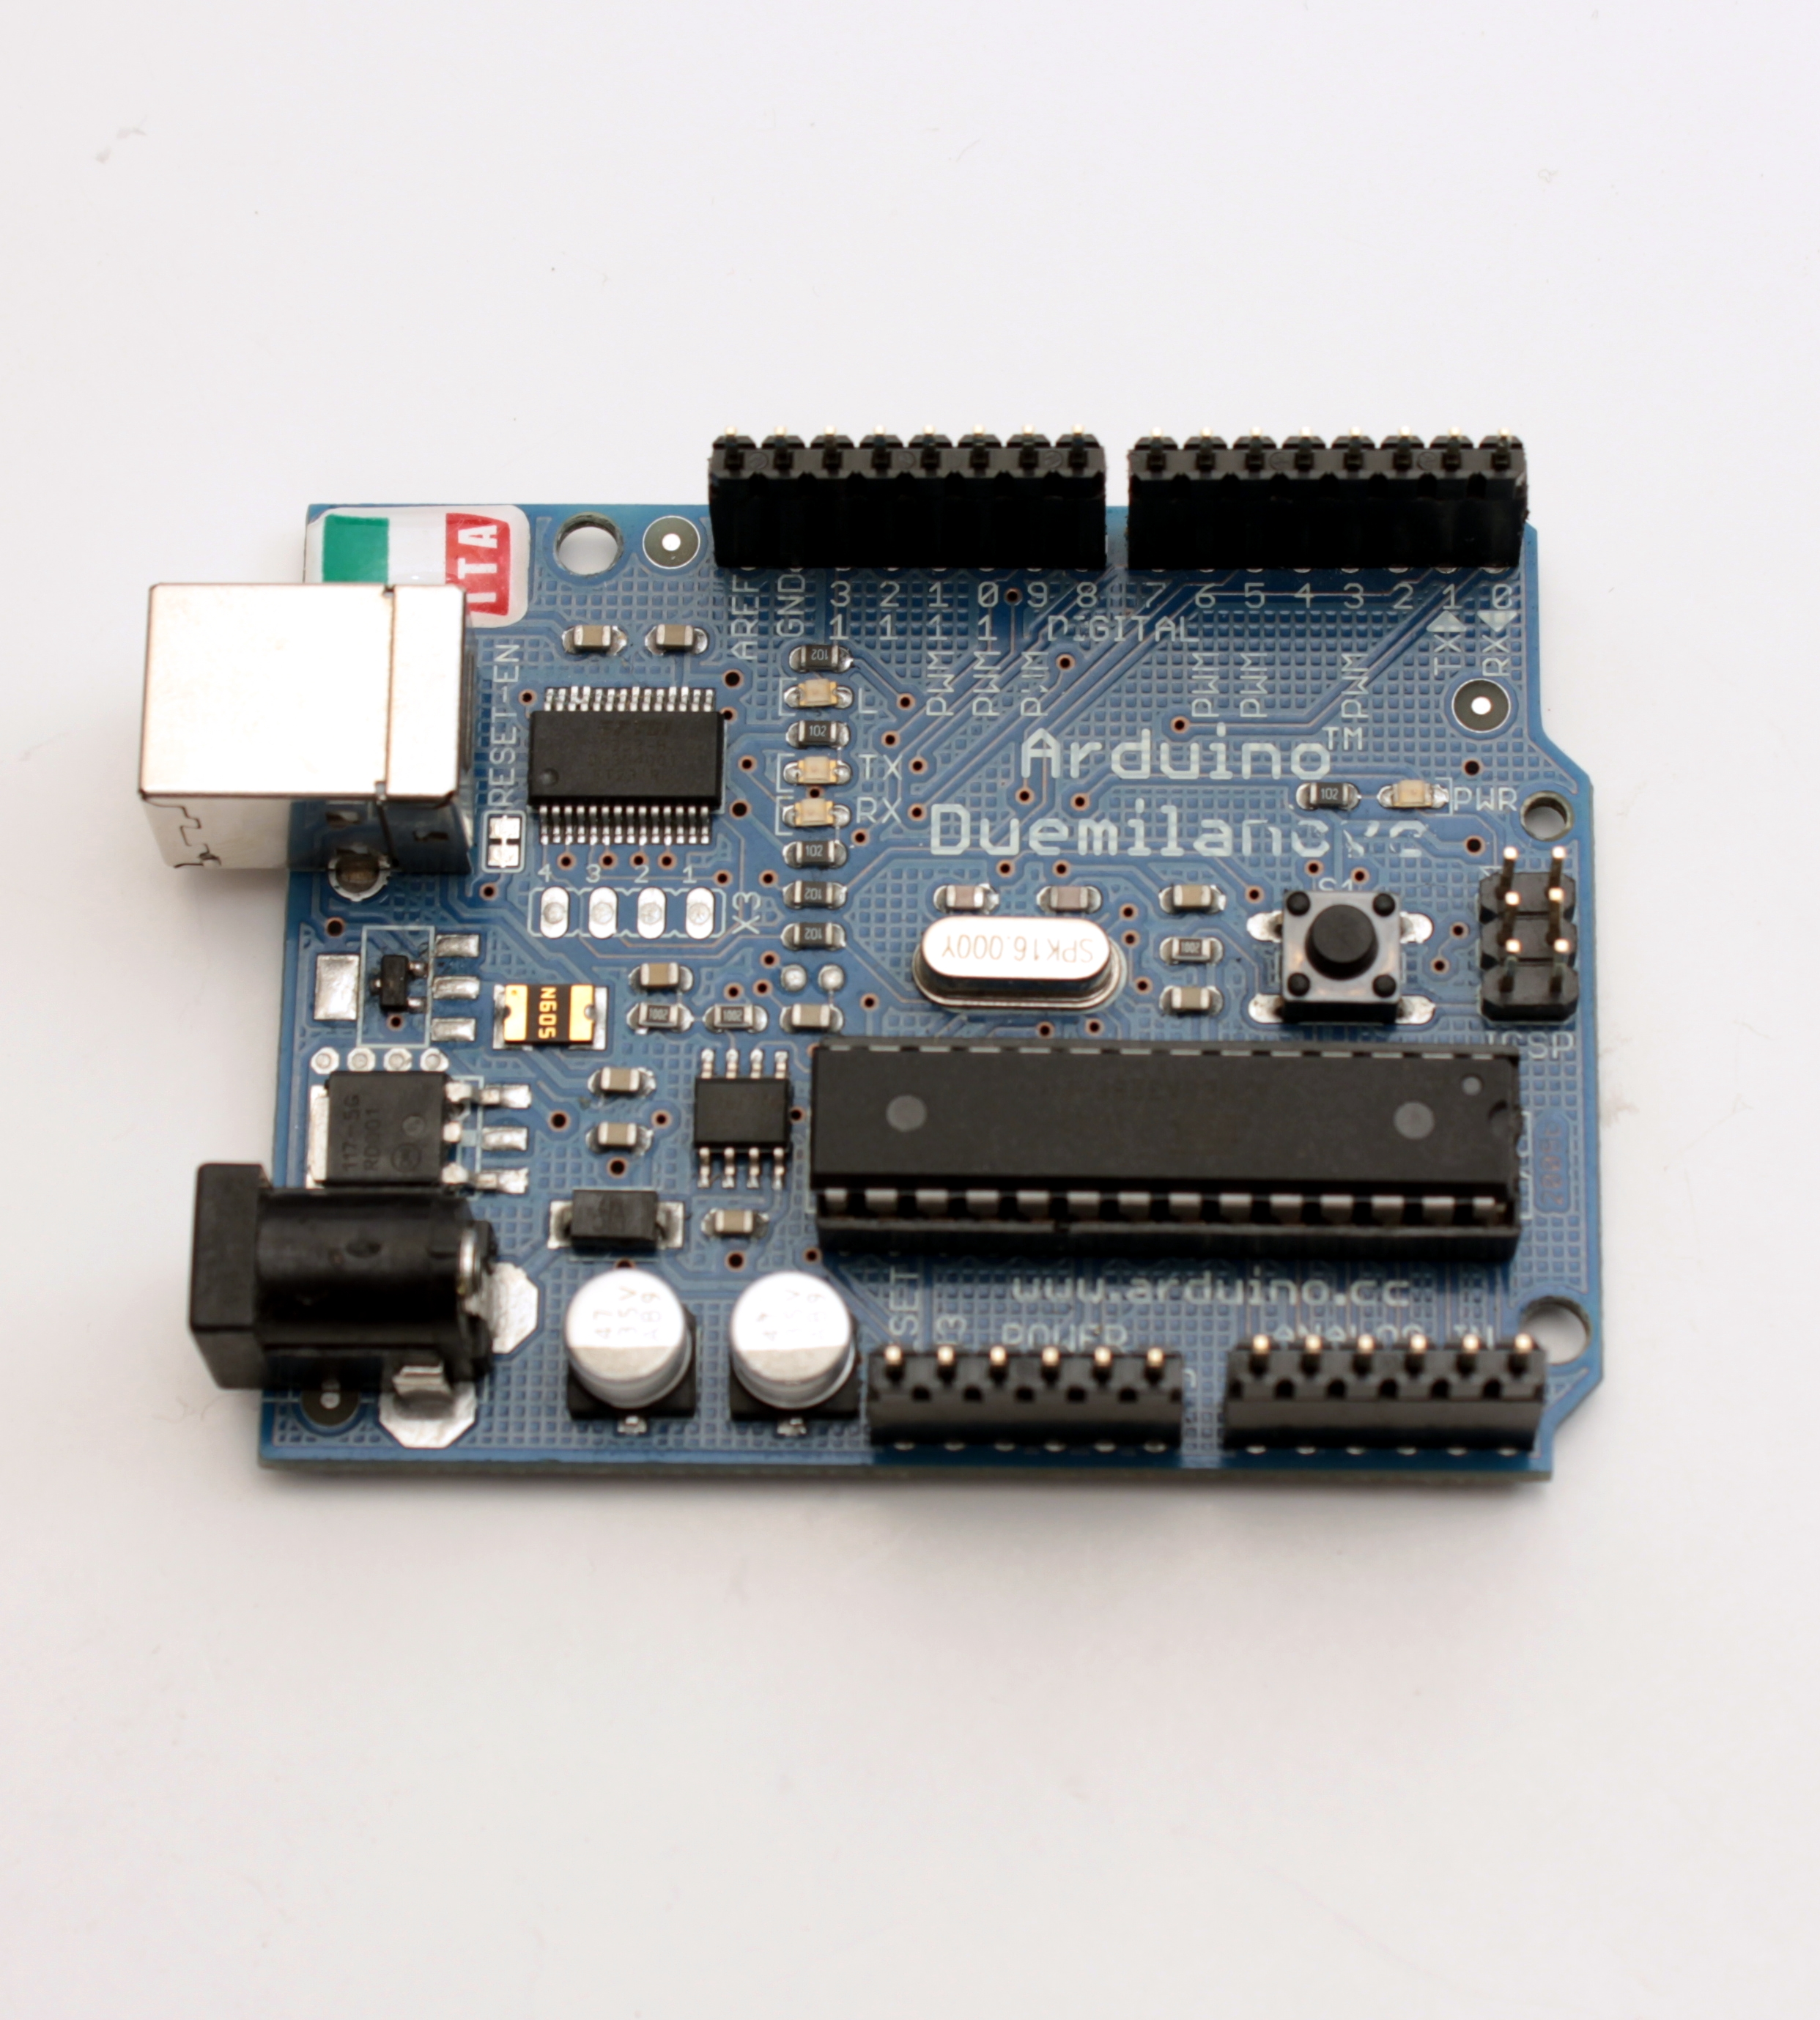 Put the male headers into the Arduino